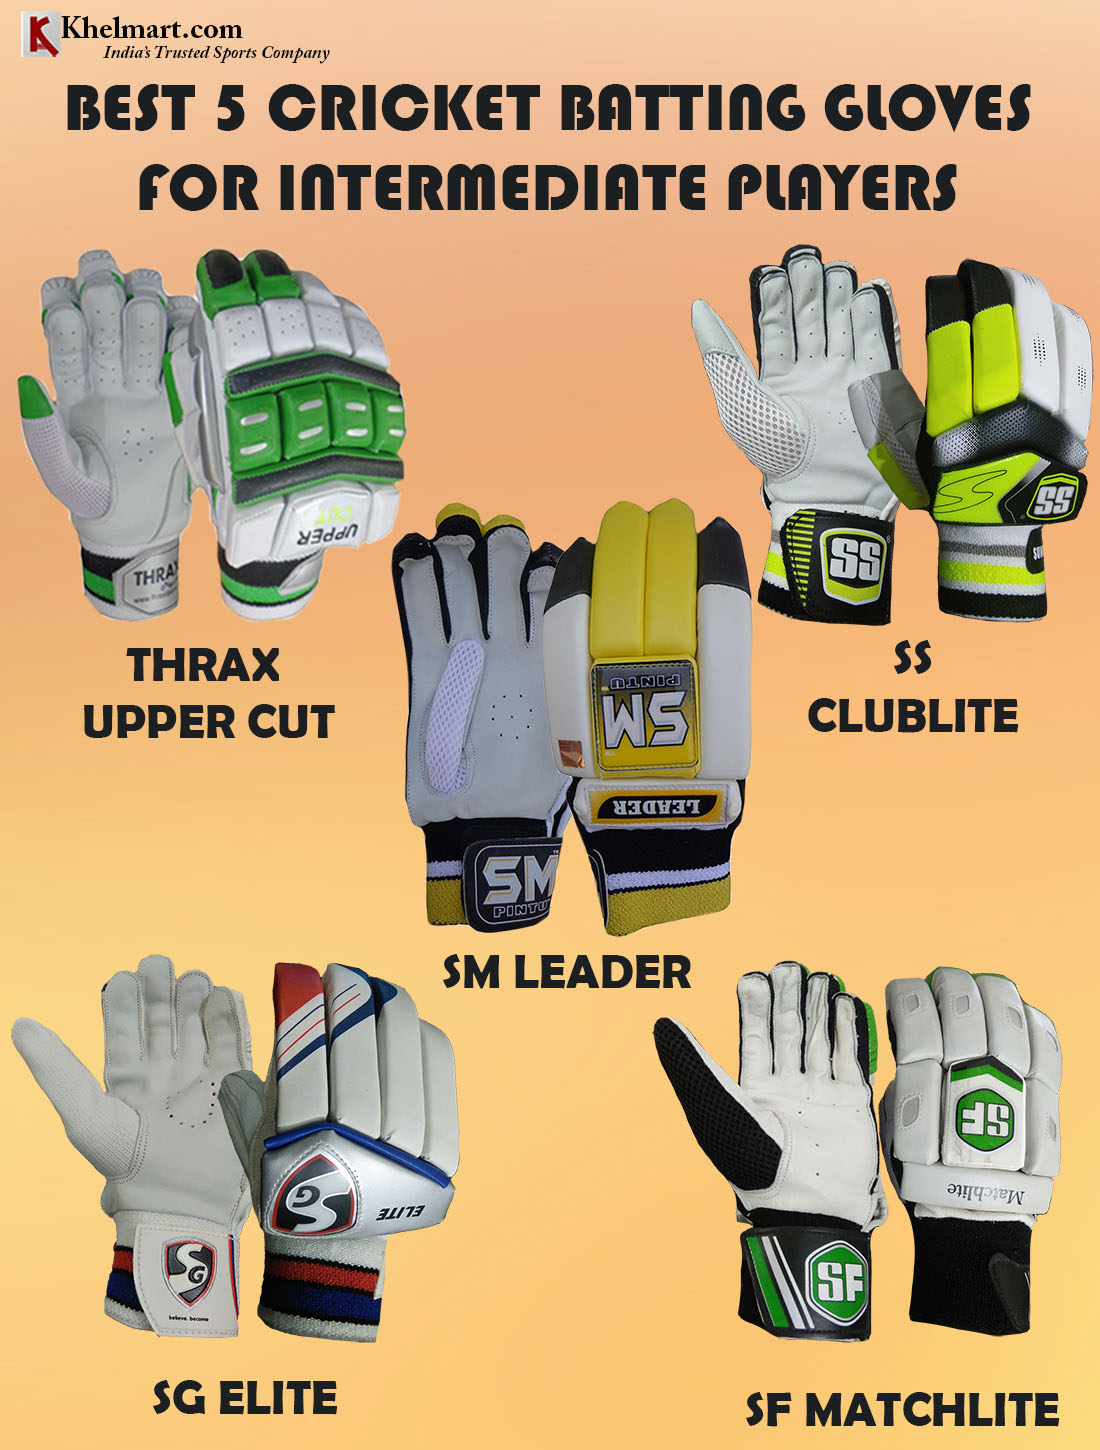 BEST 5 CRICKET BATTING GLOVES FOR INTERMEDIATE PLAYERS_1